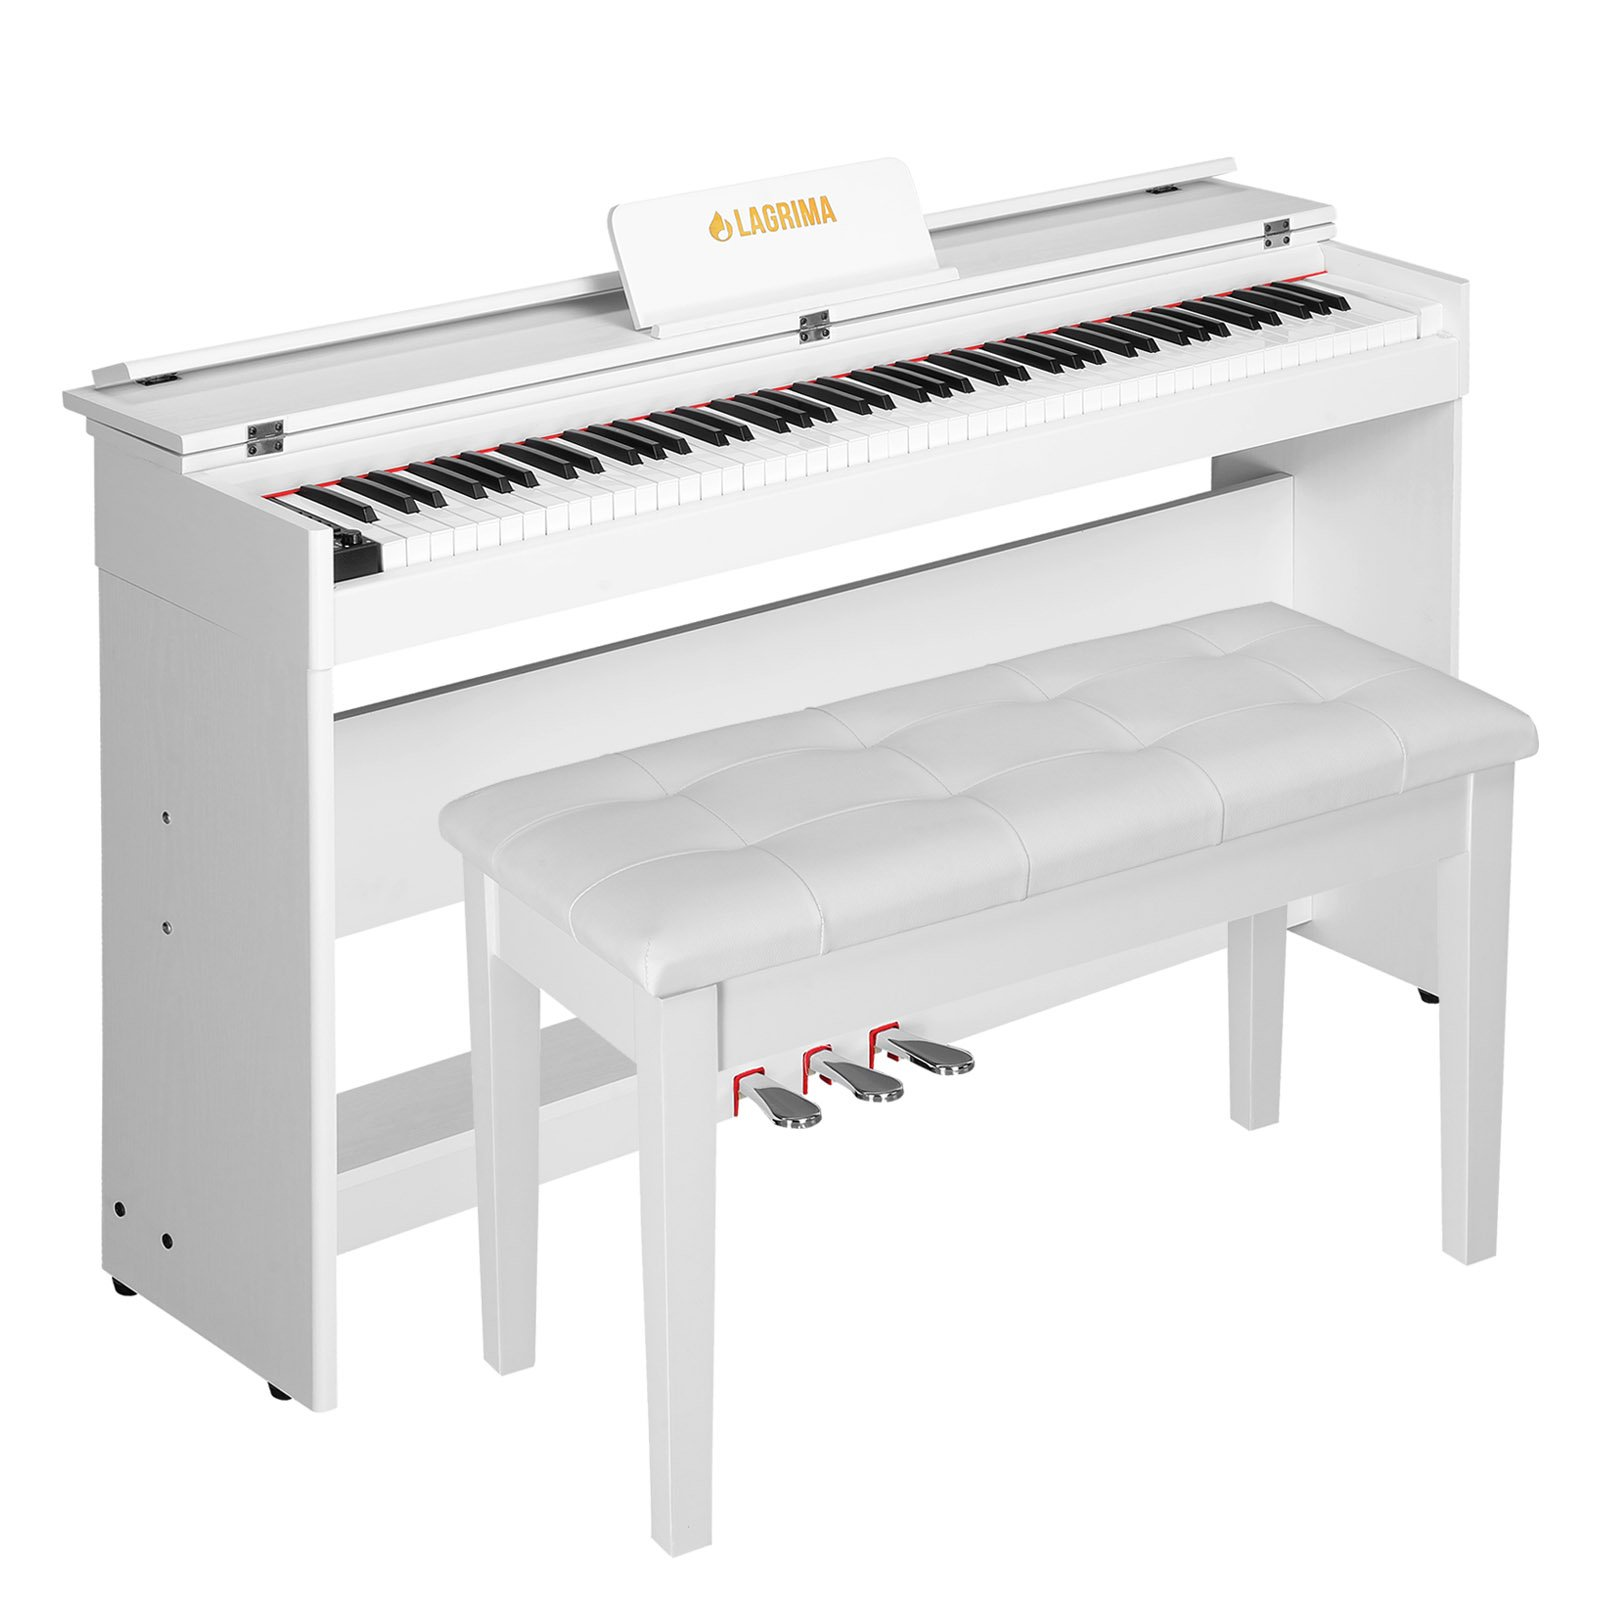 LAGRIMA Digital Piano, 88 Key Electric Keyboard Piano for Beginner/Adults with Padded Piano Bench+Music Stand+Power Adapter+3-Pedal Board+Instruction Book+Headphone Jack(White With 2 Person Bench by LAGRIMA